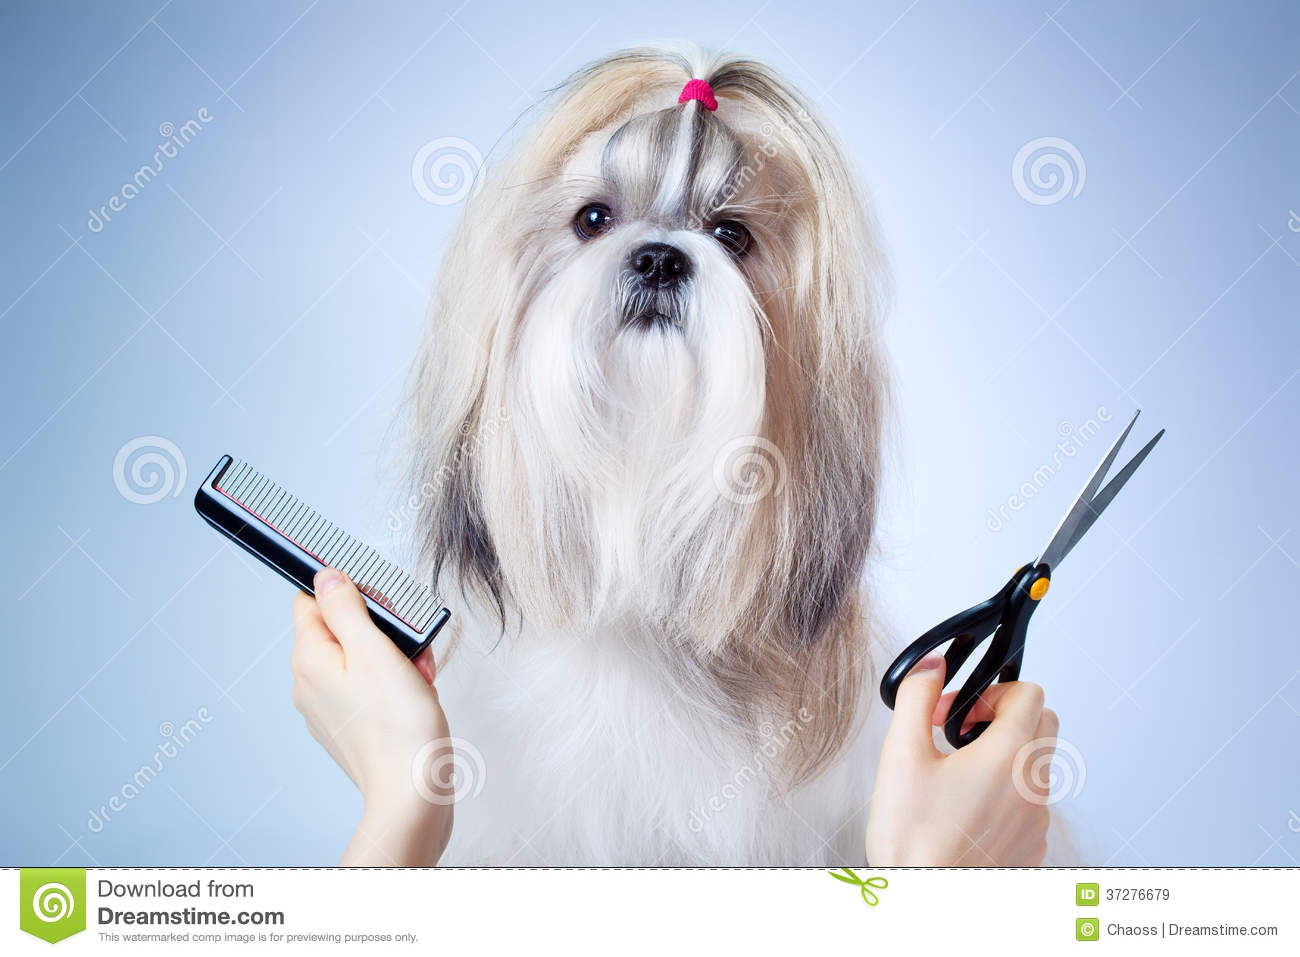 Shih Tzu Dog Grooming Royalty Free Stock Images - Image: 37276679